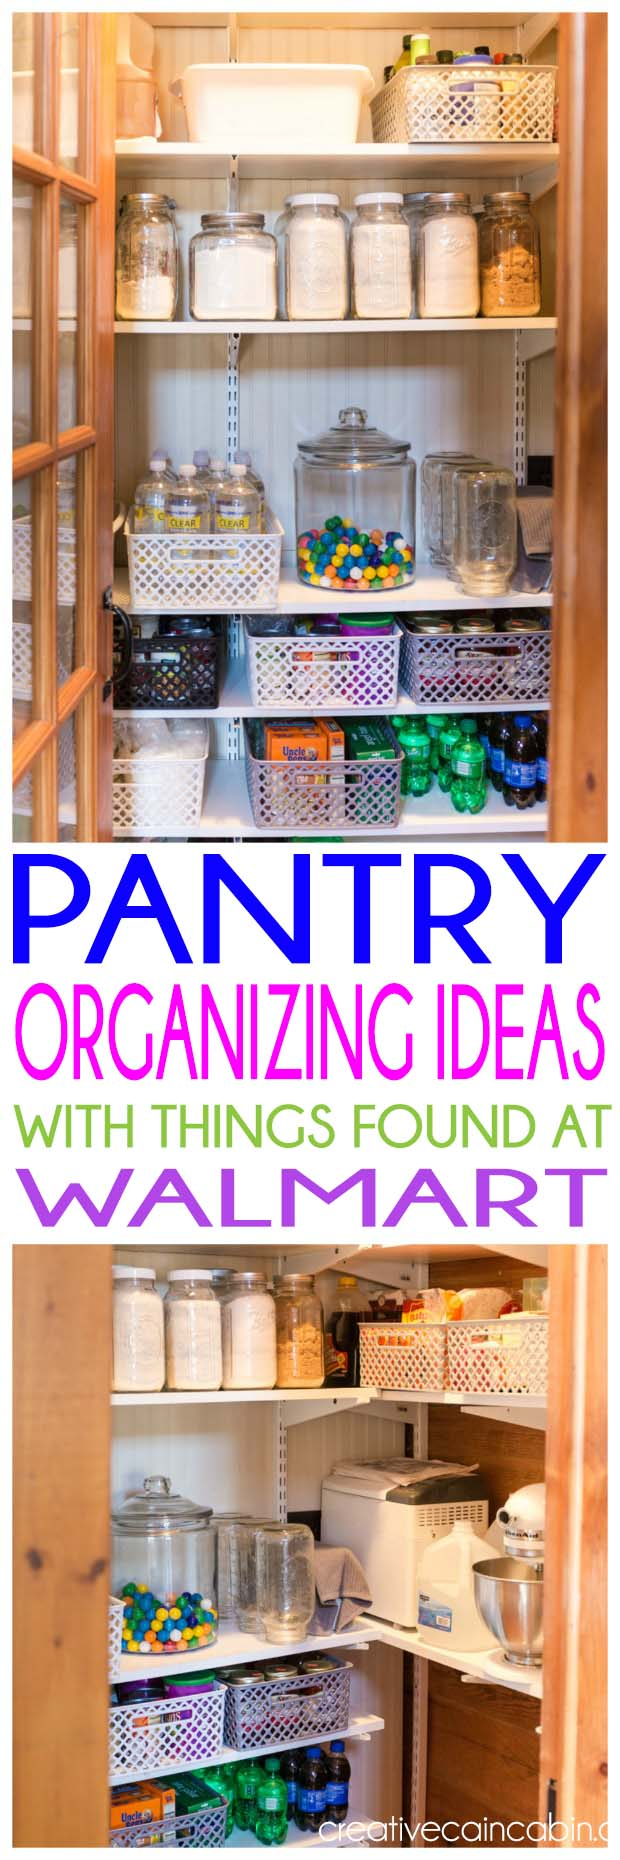 How to Organize a Pantry for Under $40 Using Things Found at Walmart